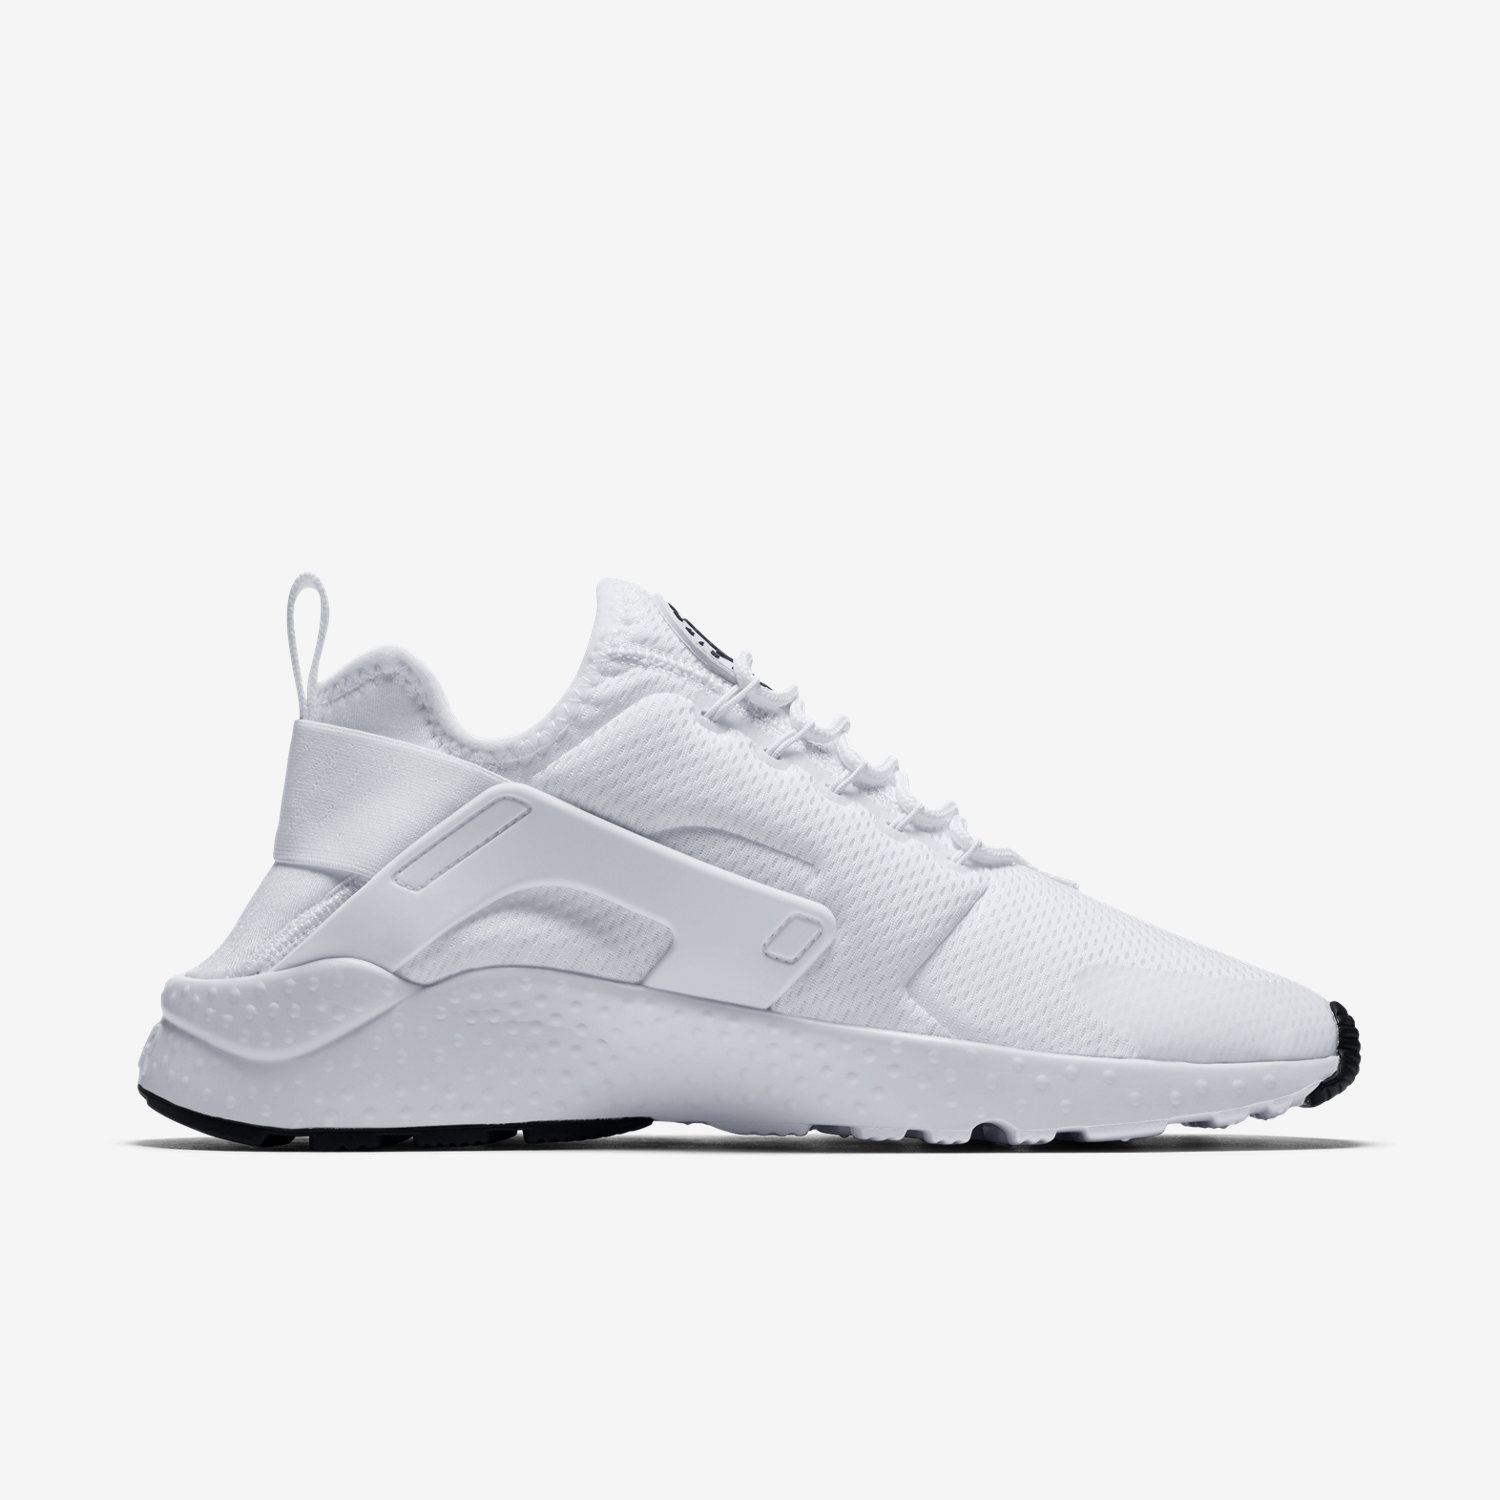 nike running shoes all white. nike running shoes all white